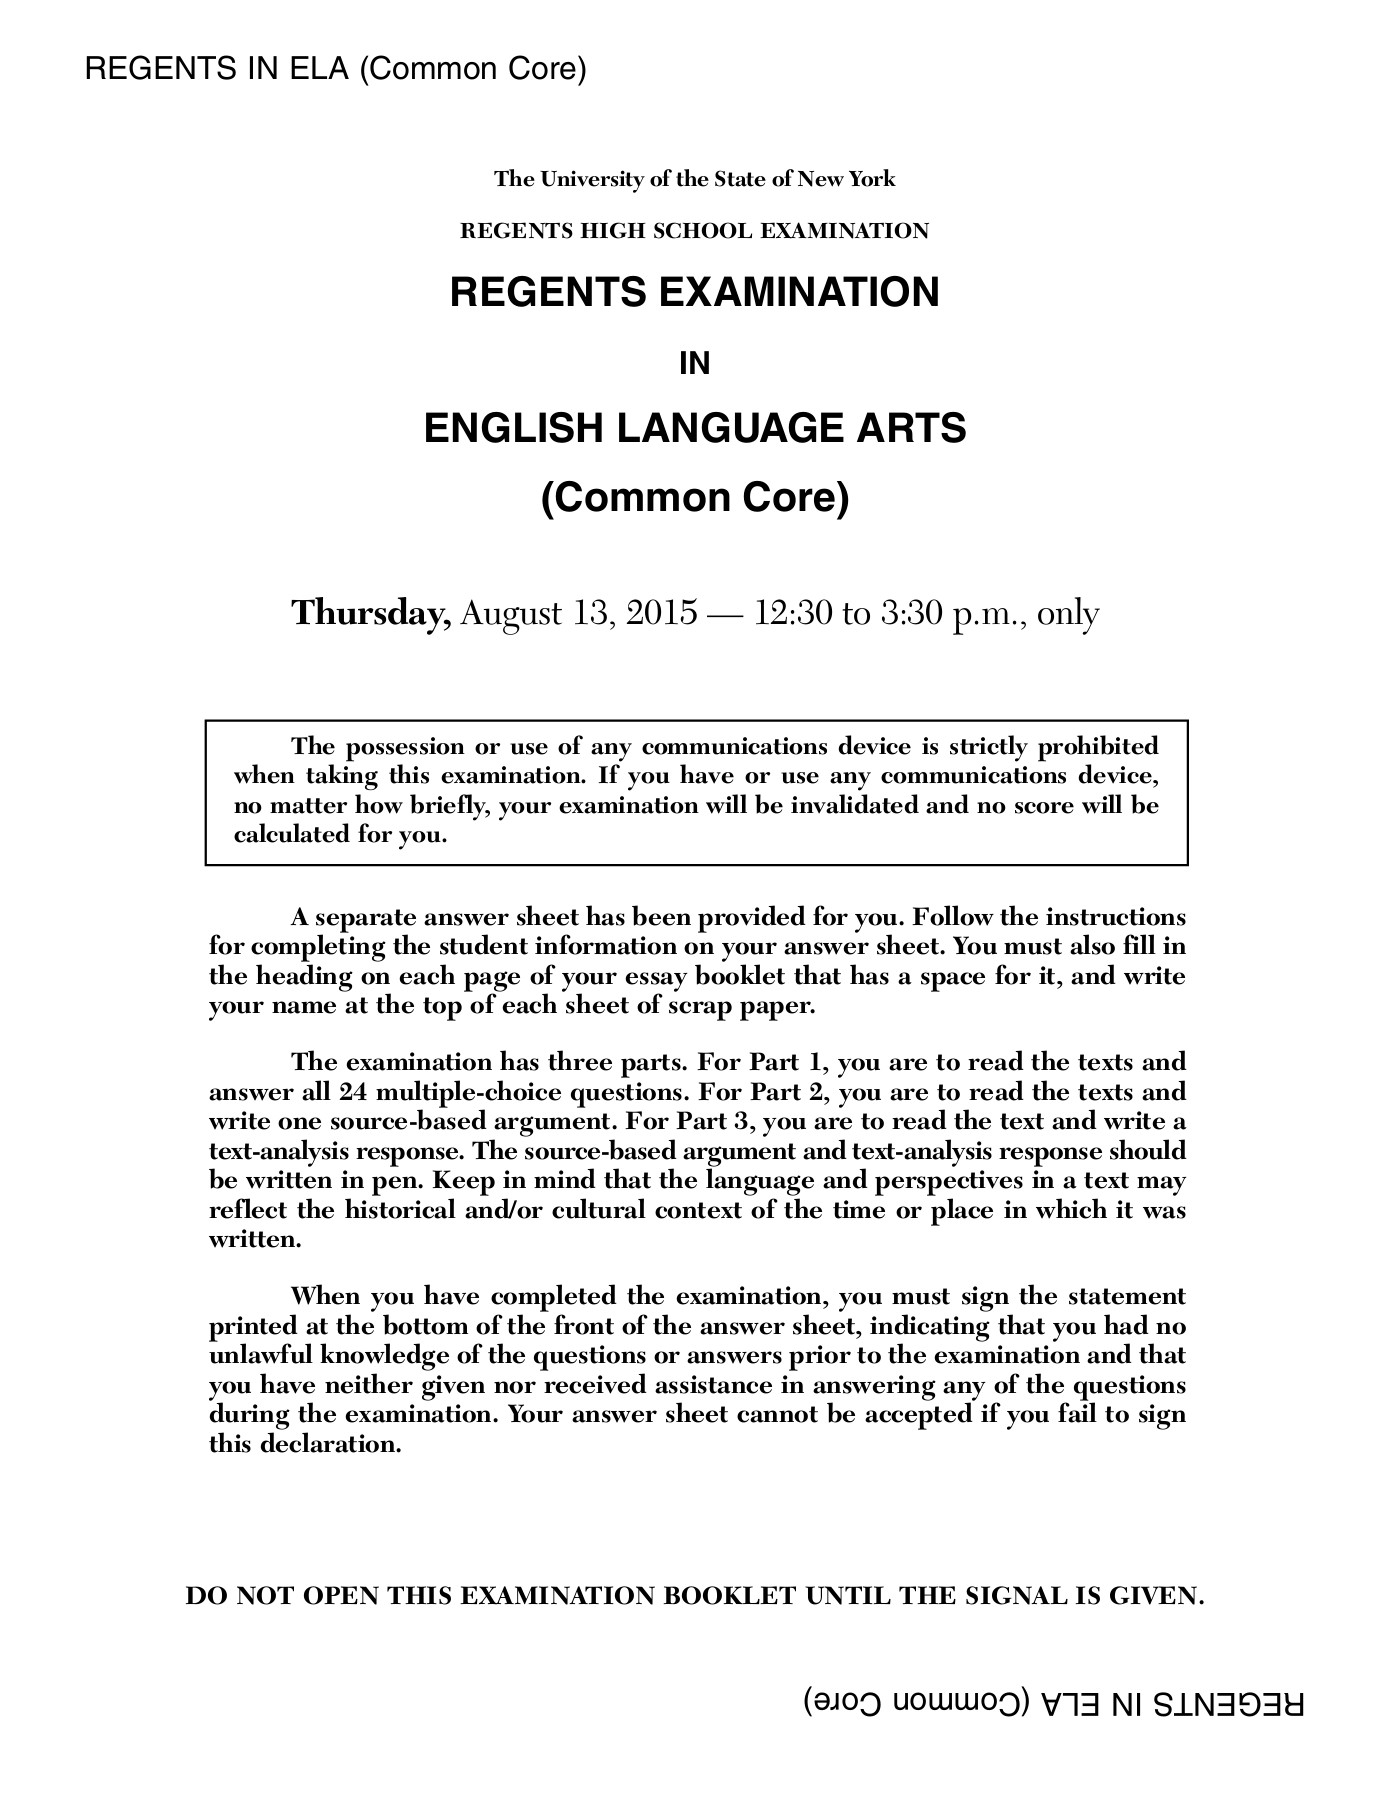 nysed essay booklets